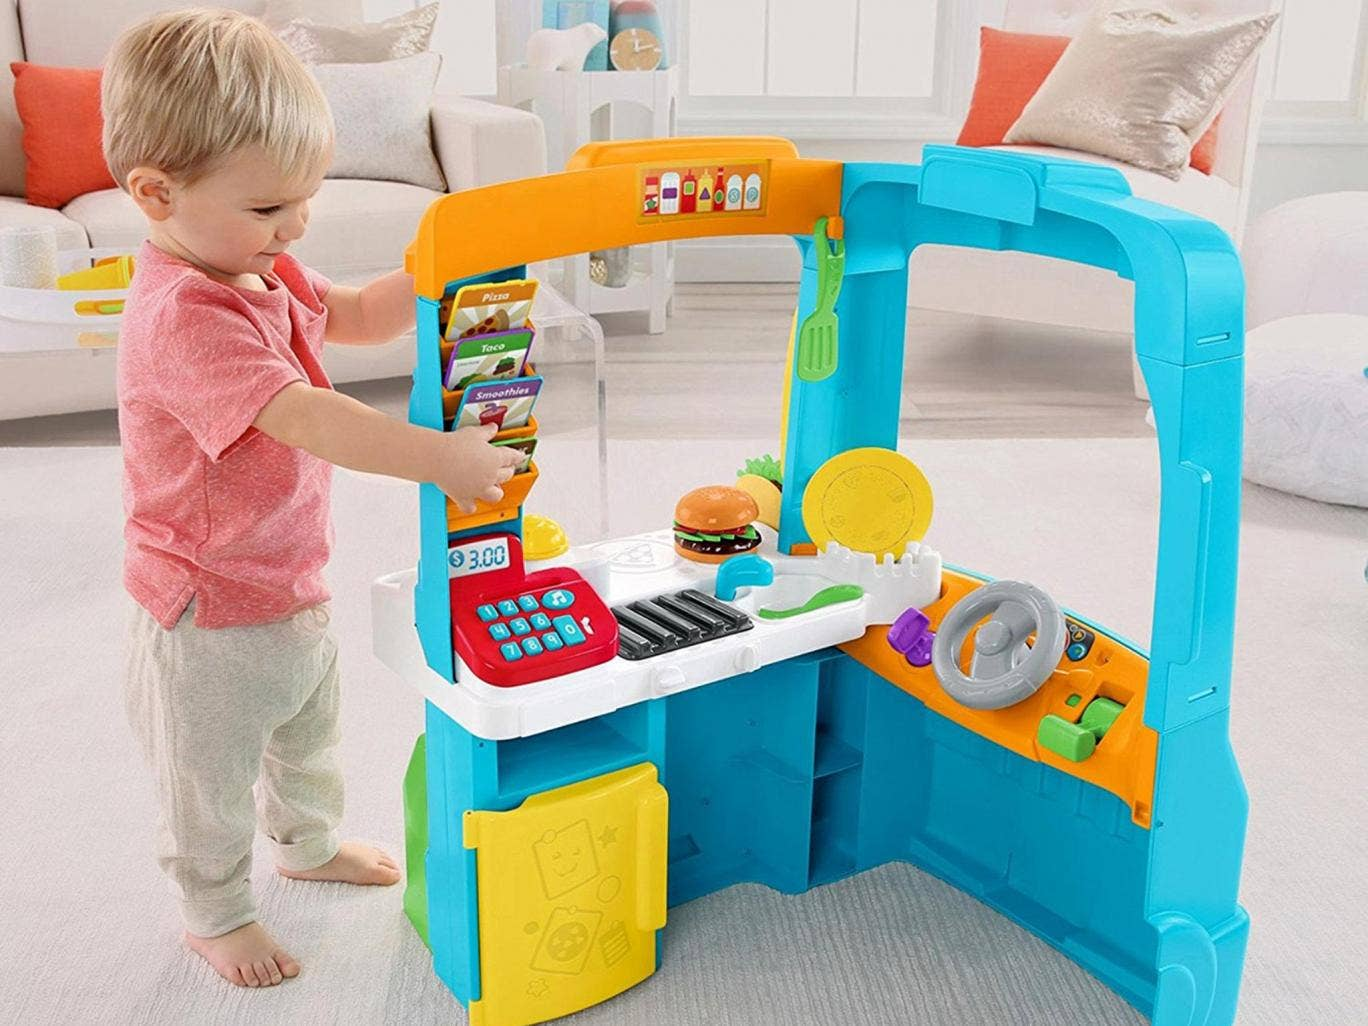 11 best gifts for 1-year-olds | The Independent